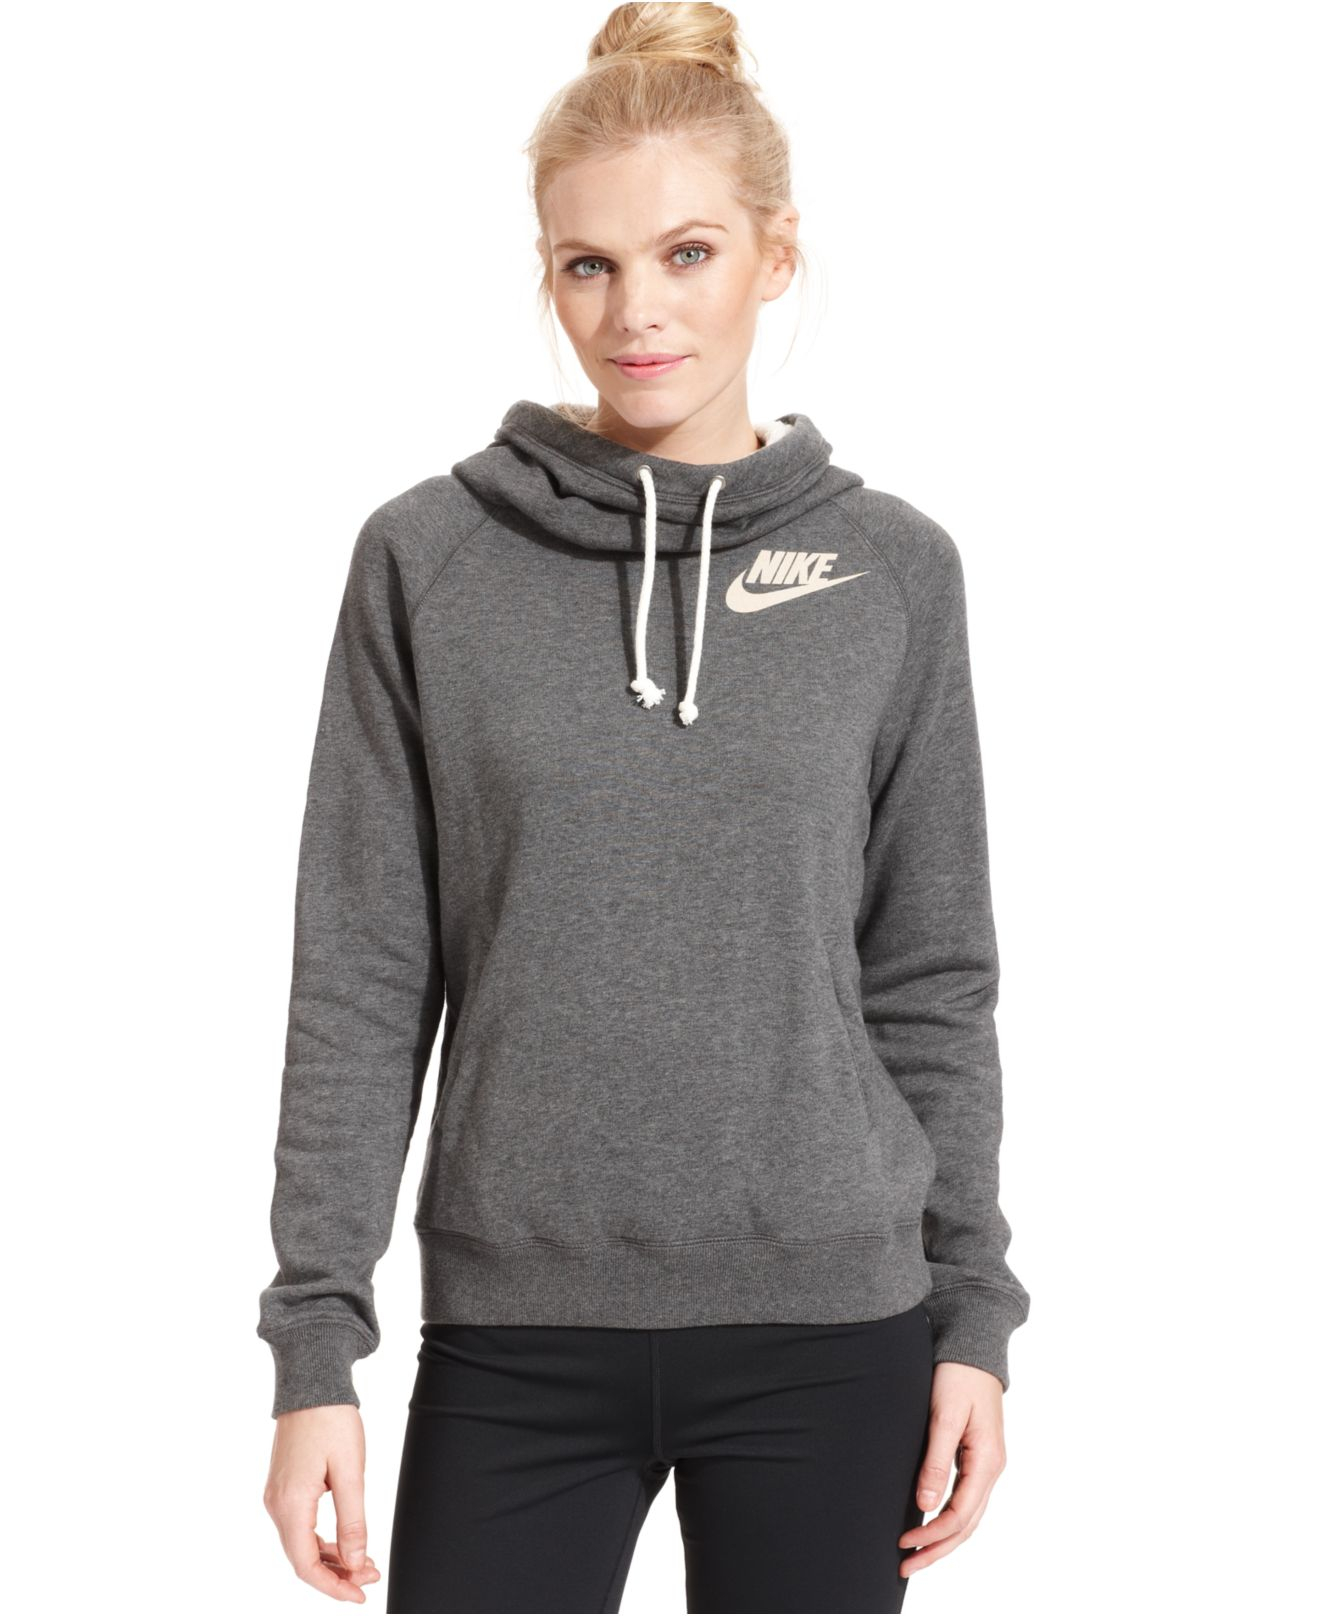 b630990c0e4b Lyst - Nike Rally Funnel-Neck Sweatshirt Hoodie in Gray